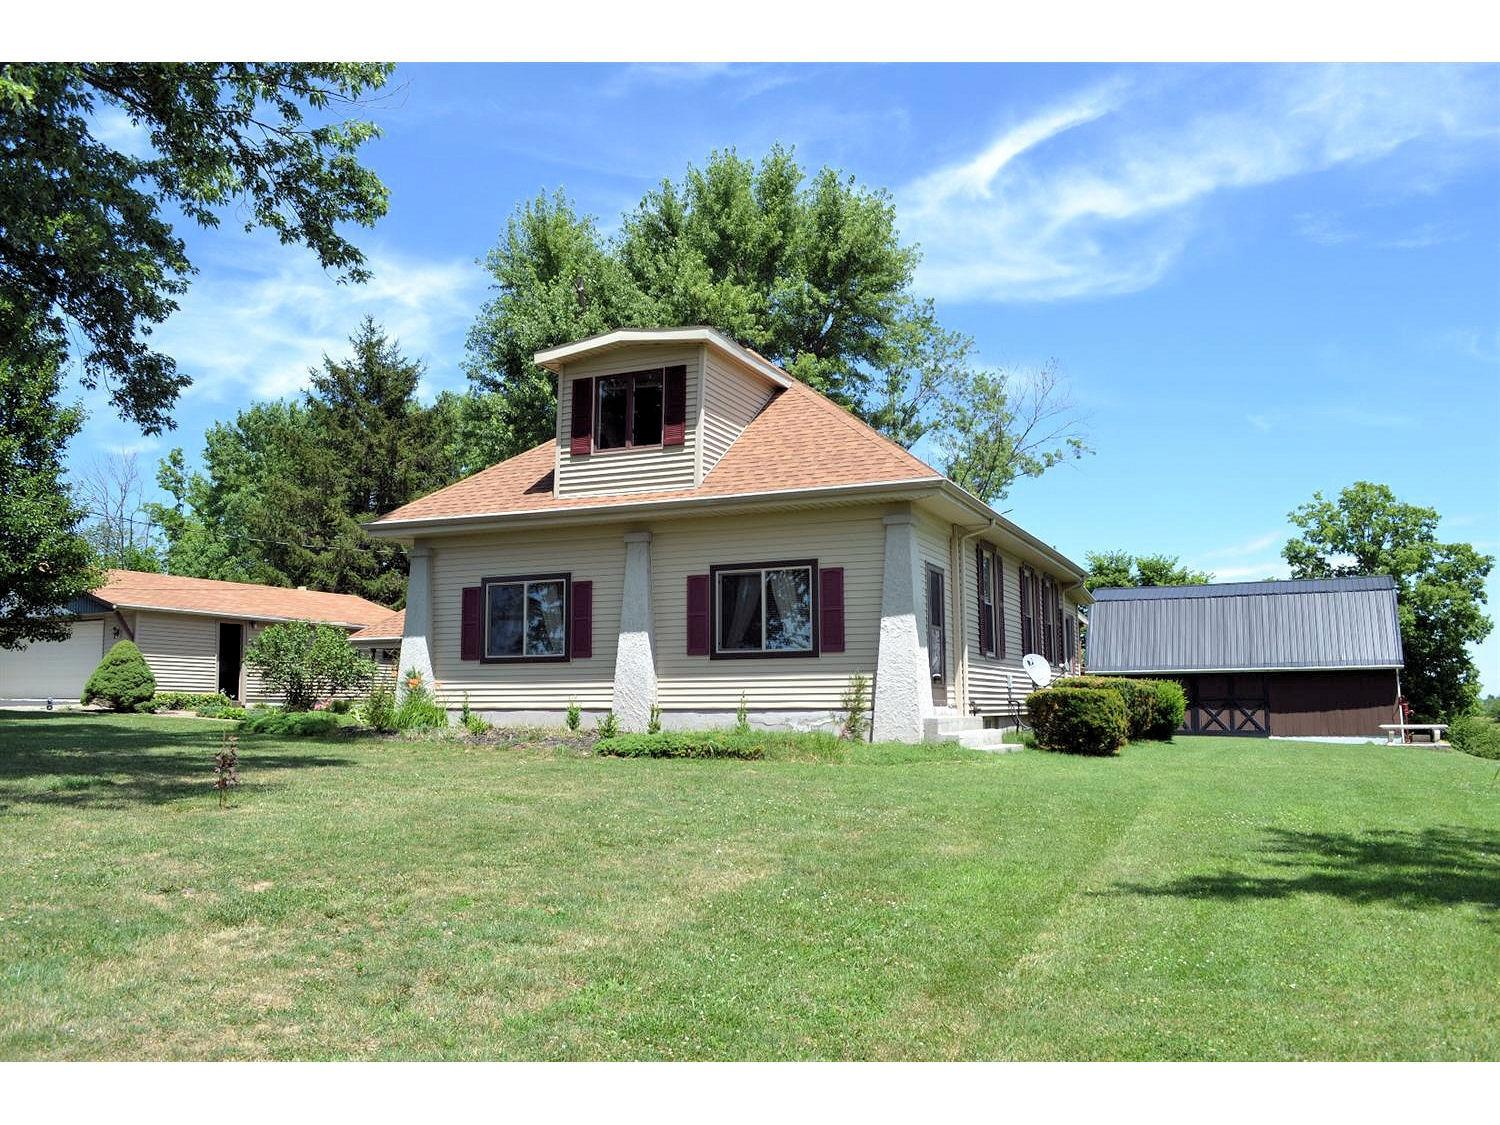 2324 West Elkton Rd St. Clair Twp., OH